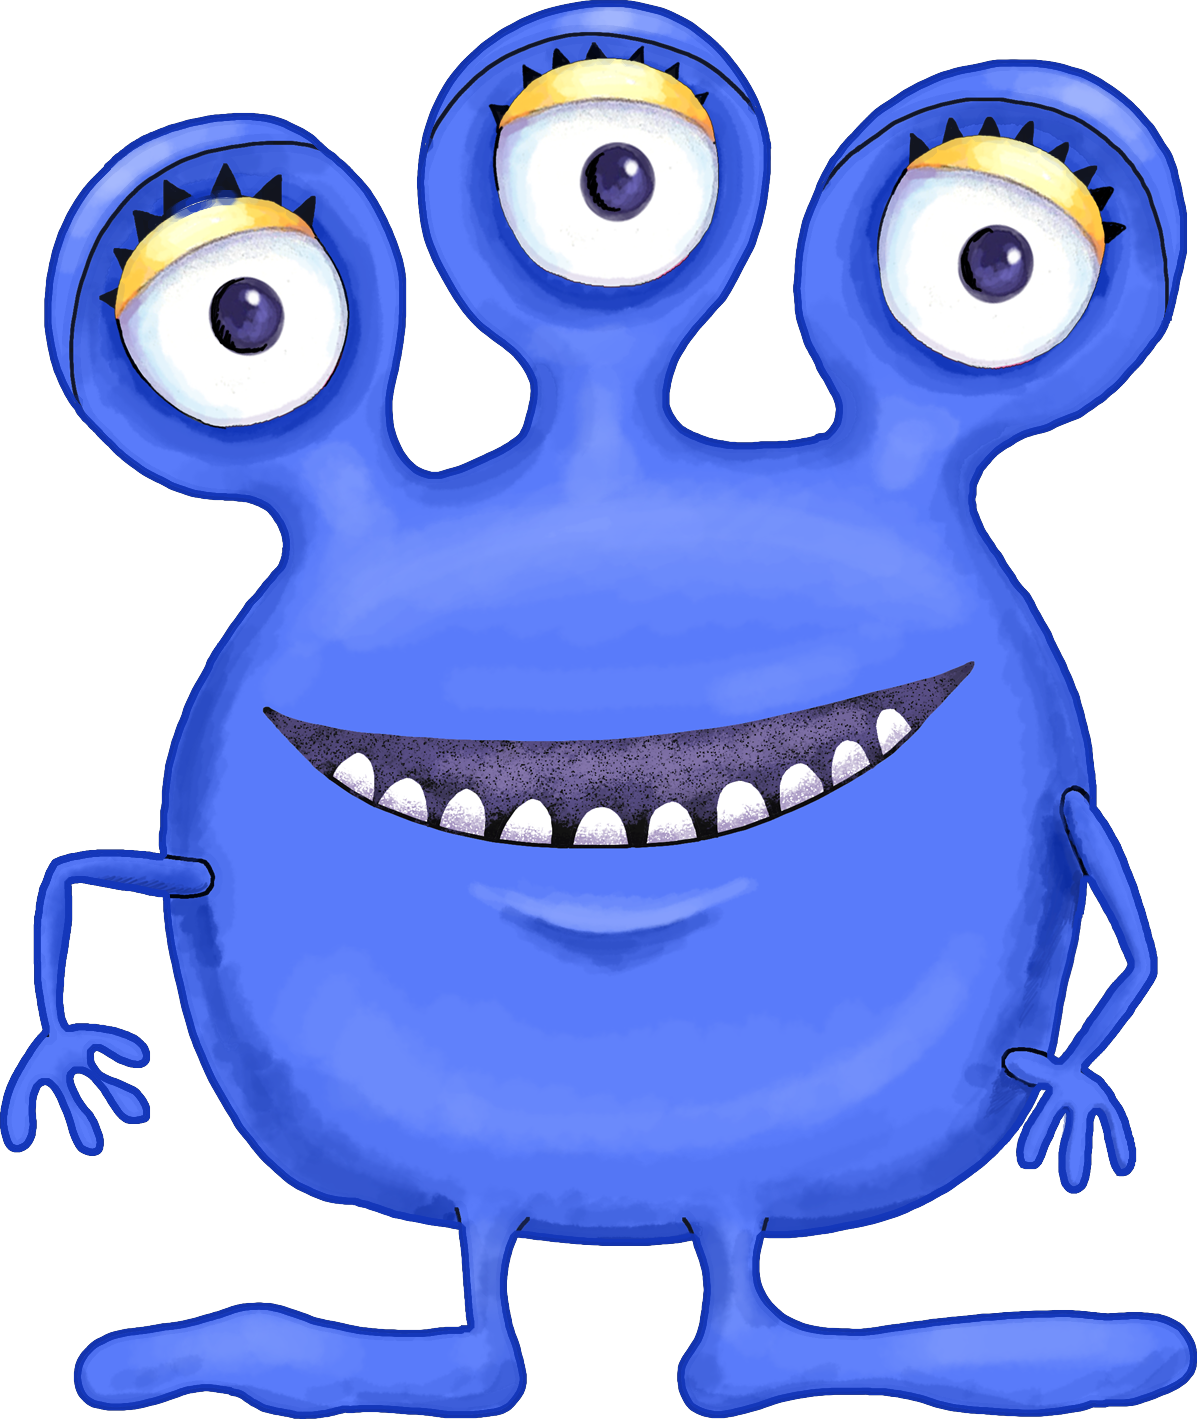 Aliens clipart real purple. Your free art cute